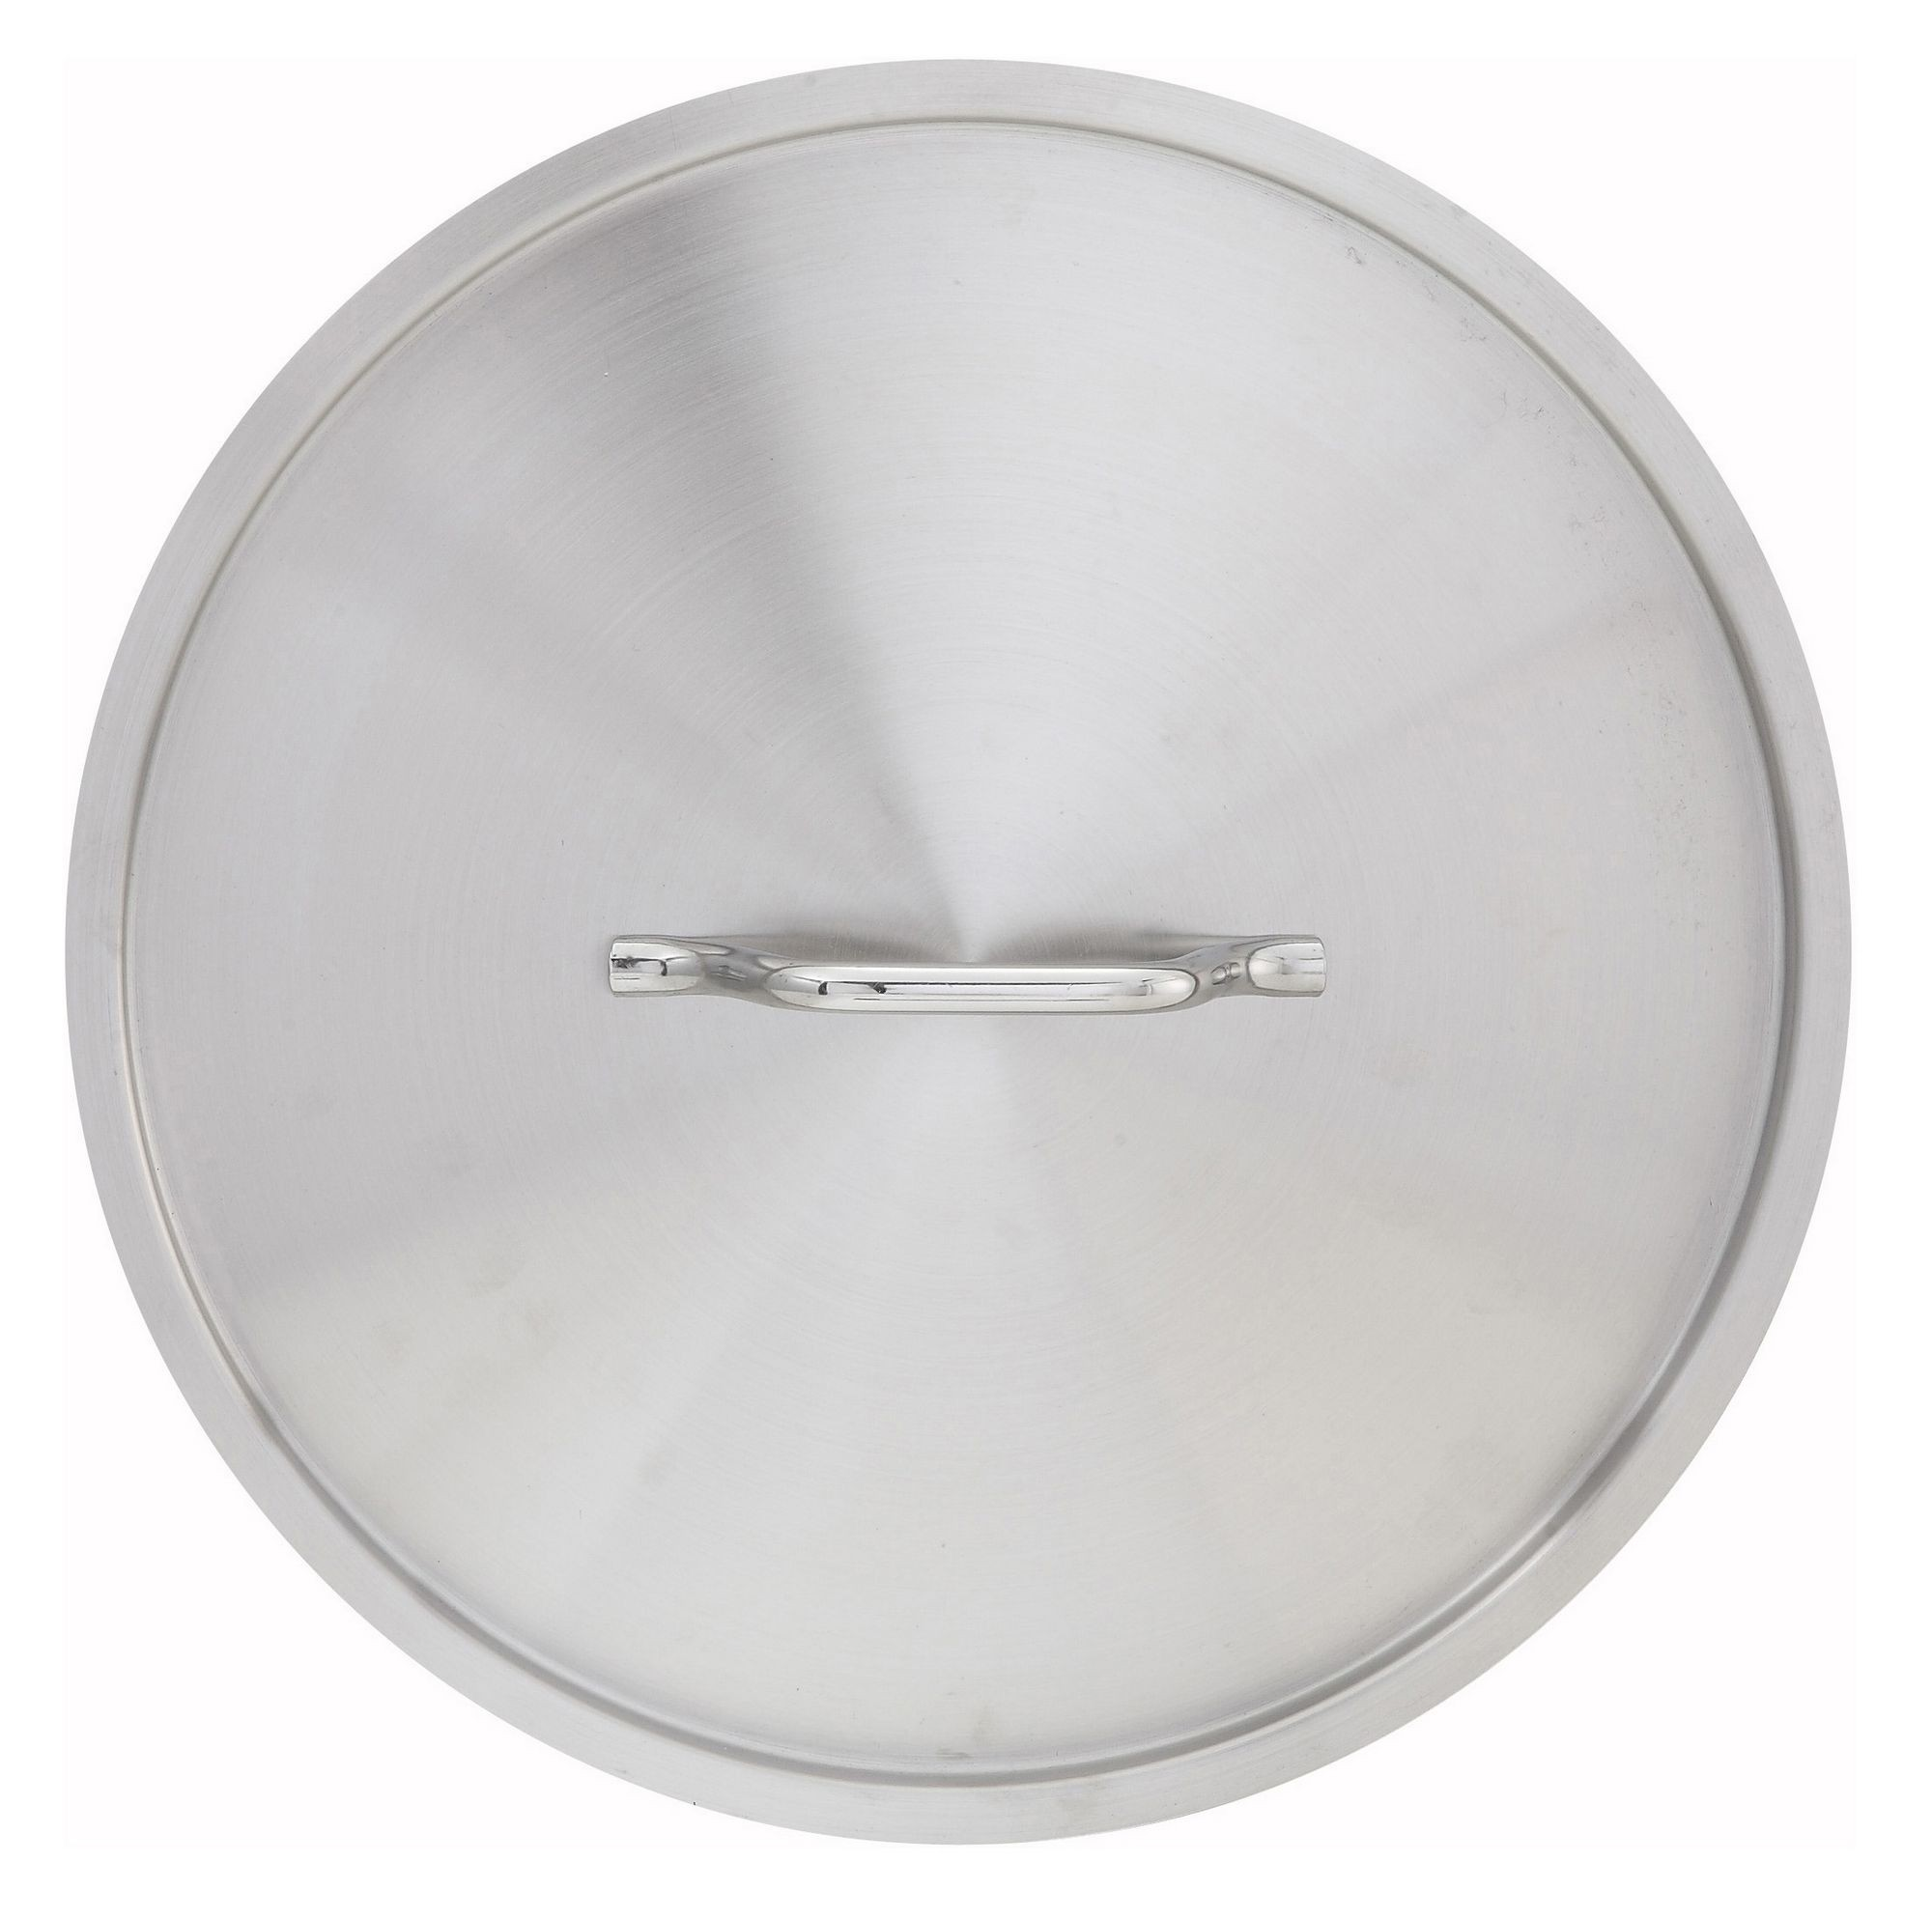 Stainless Steel Cover For 60-Qt Stock Pot (SST-60)